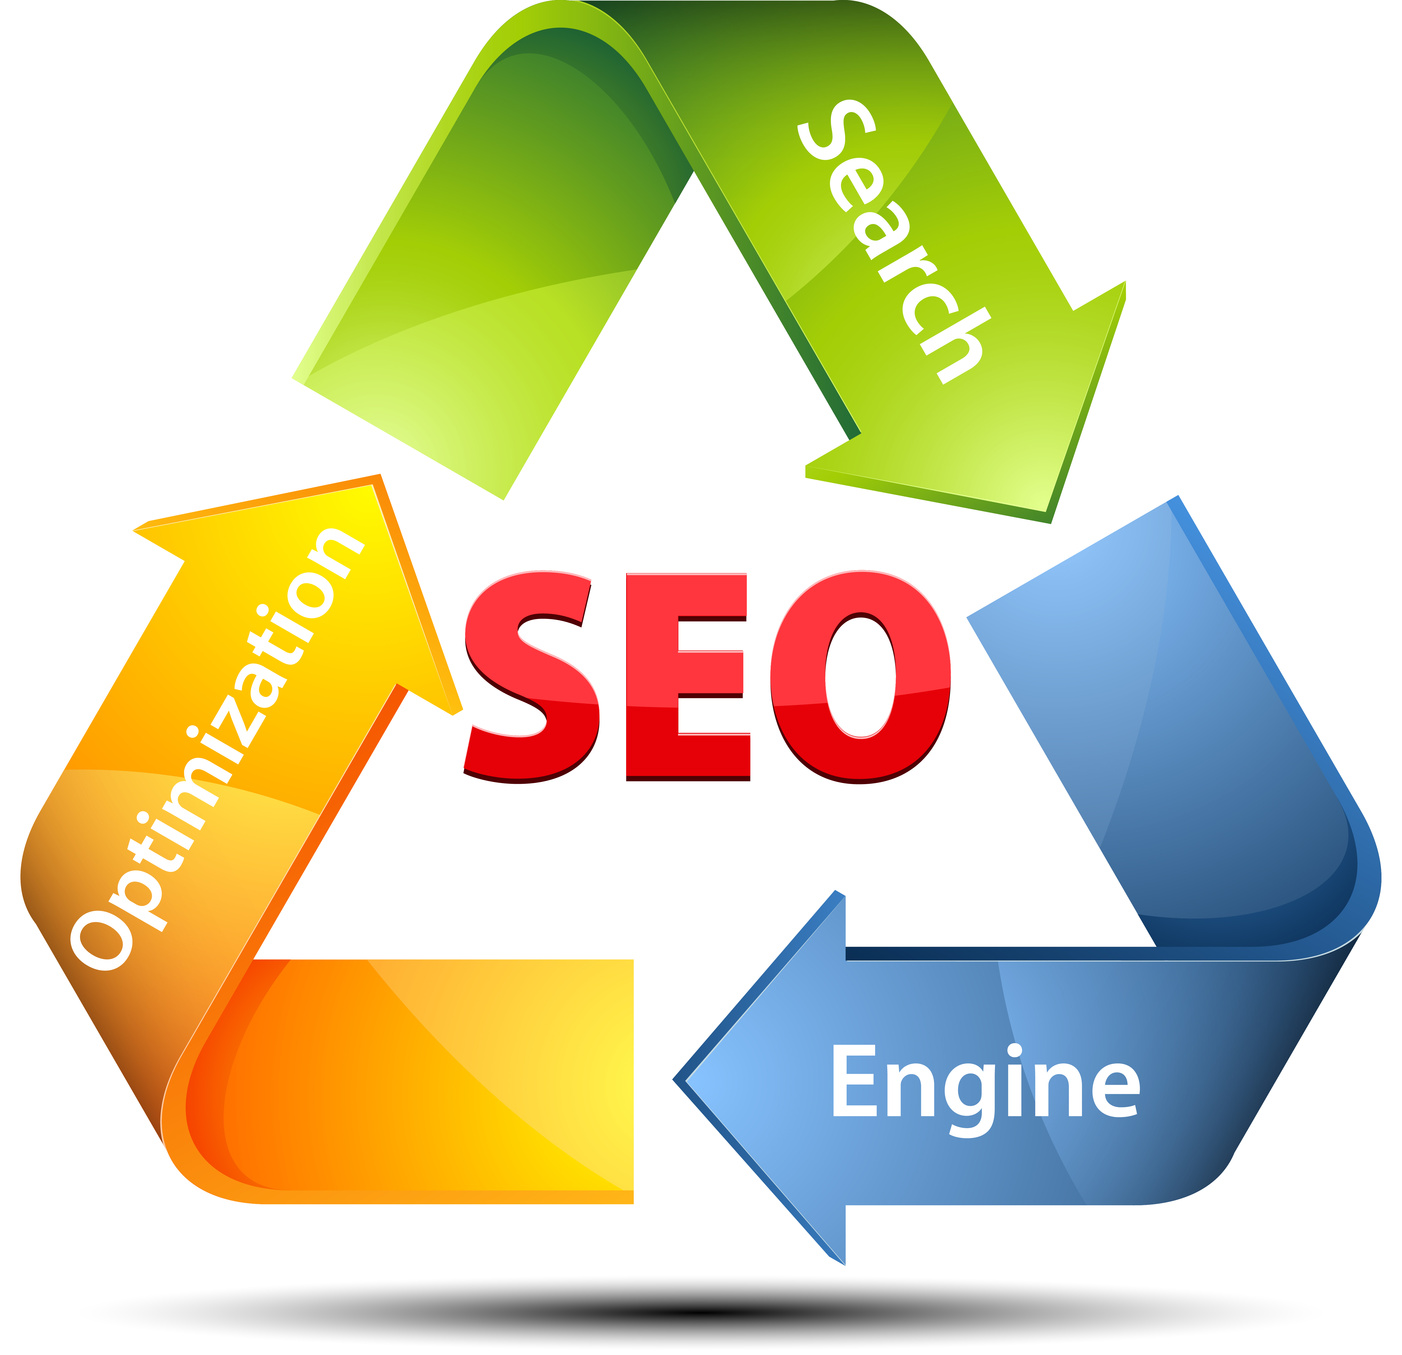 (SEO) Search Engine Optimization by professional marketer